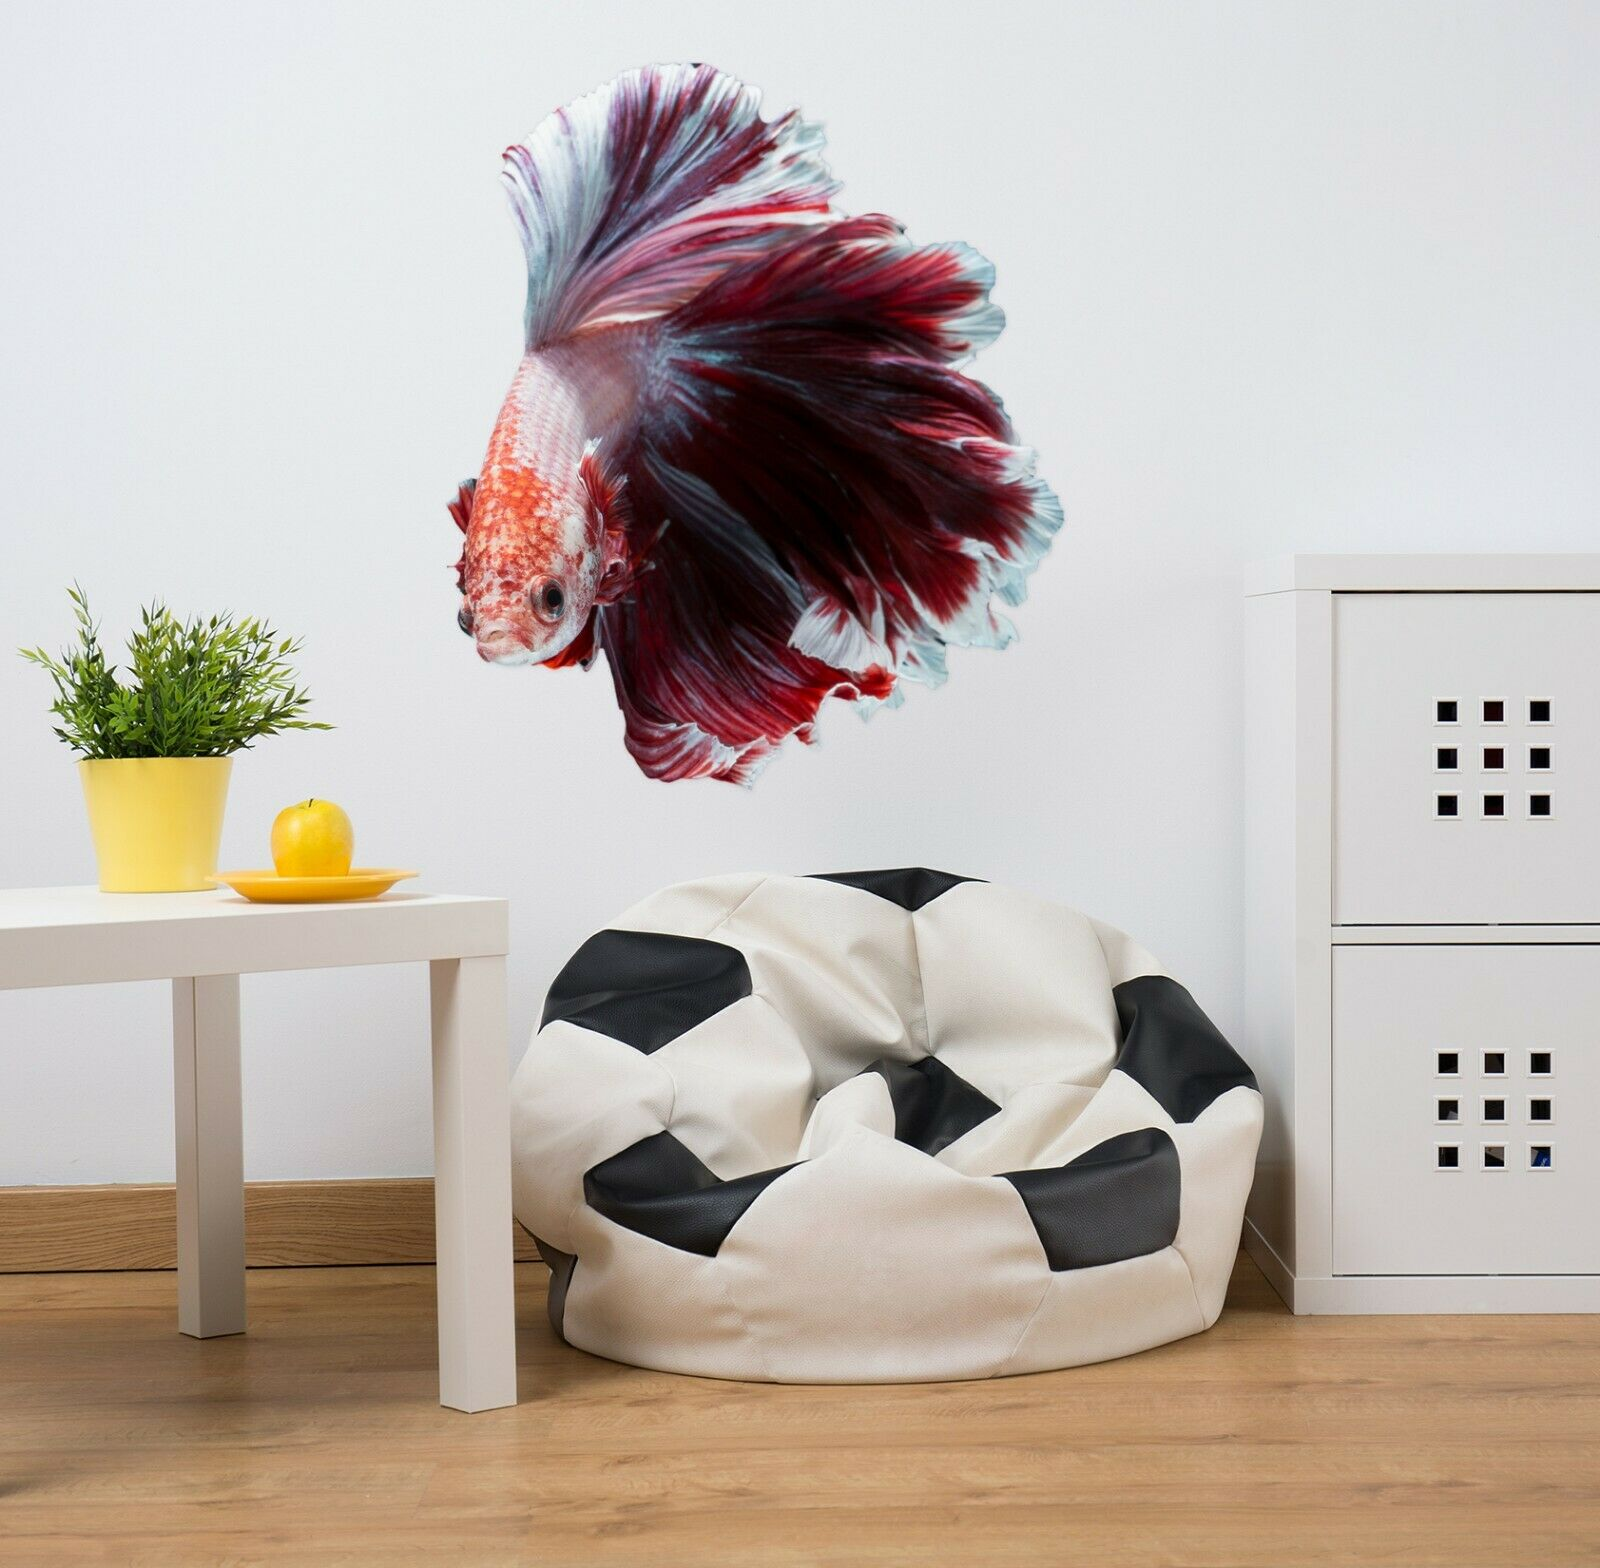 3D Fight Fish P82 Animal Wallpaper Mural Self-adhesive Removable Zoe